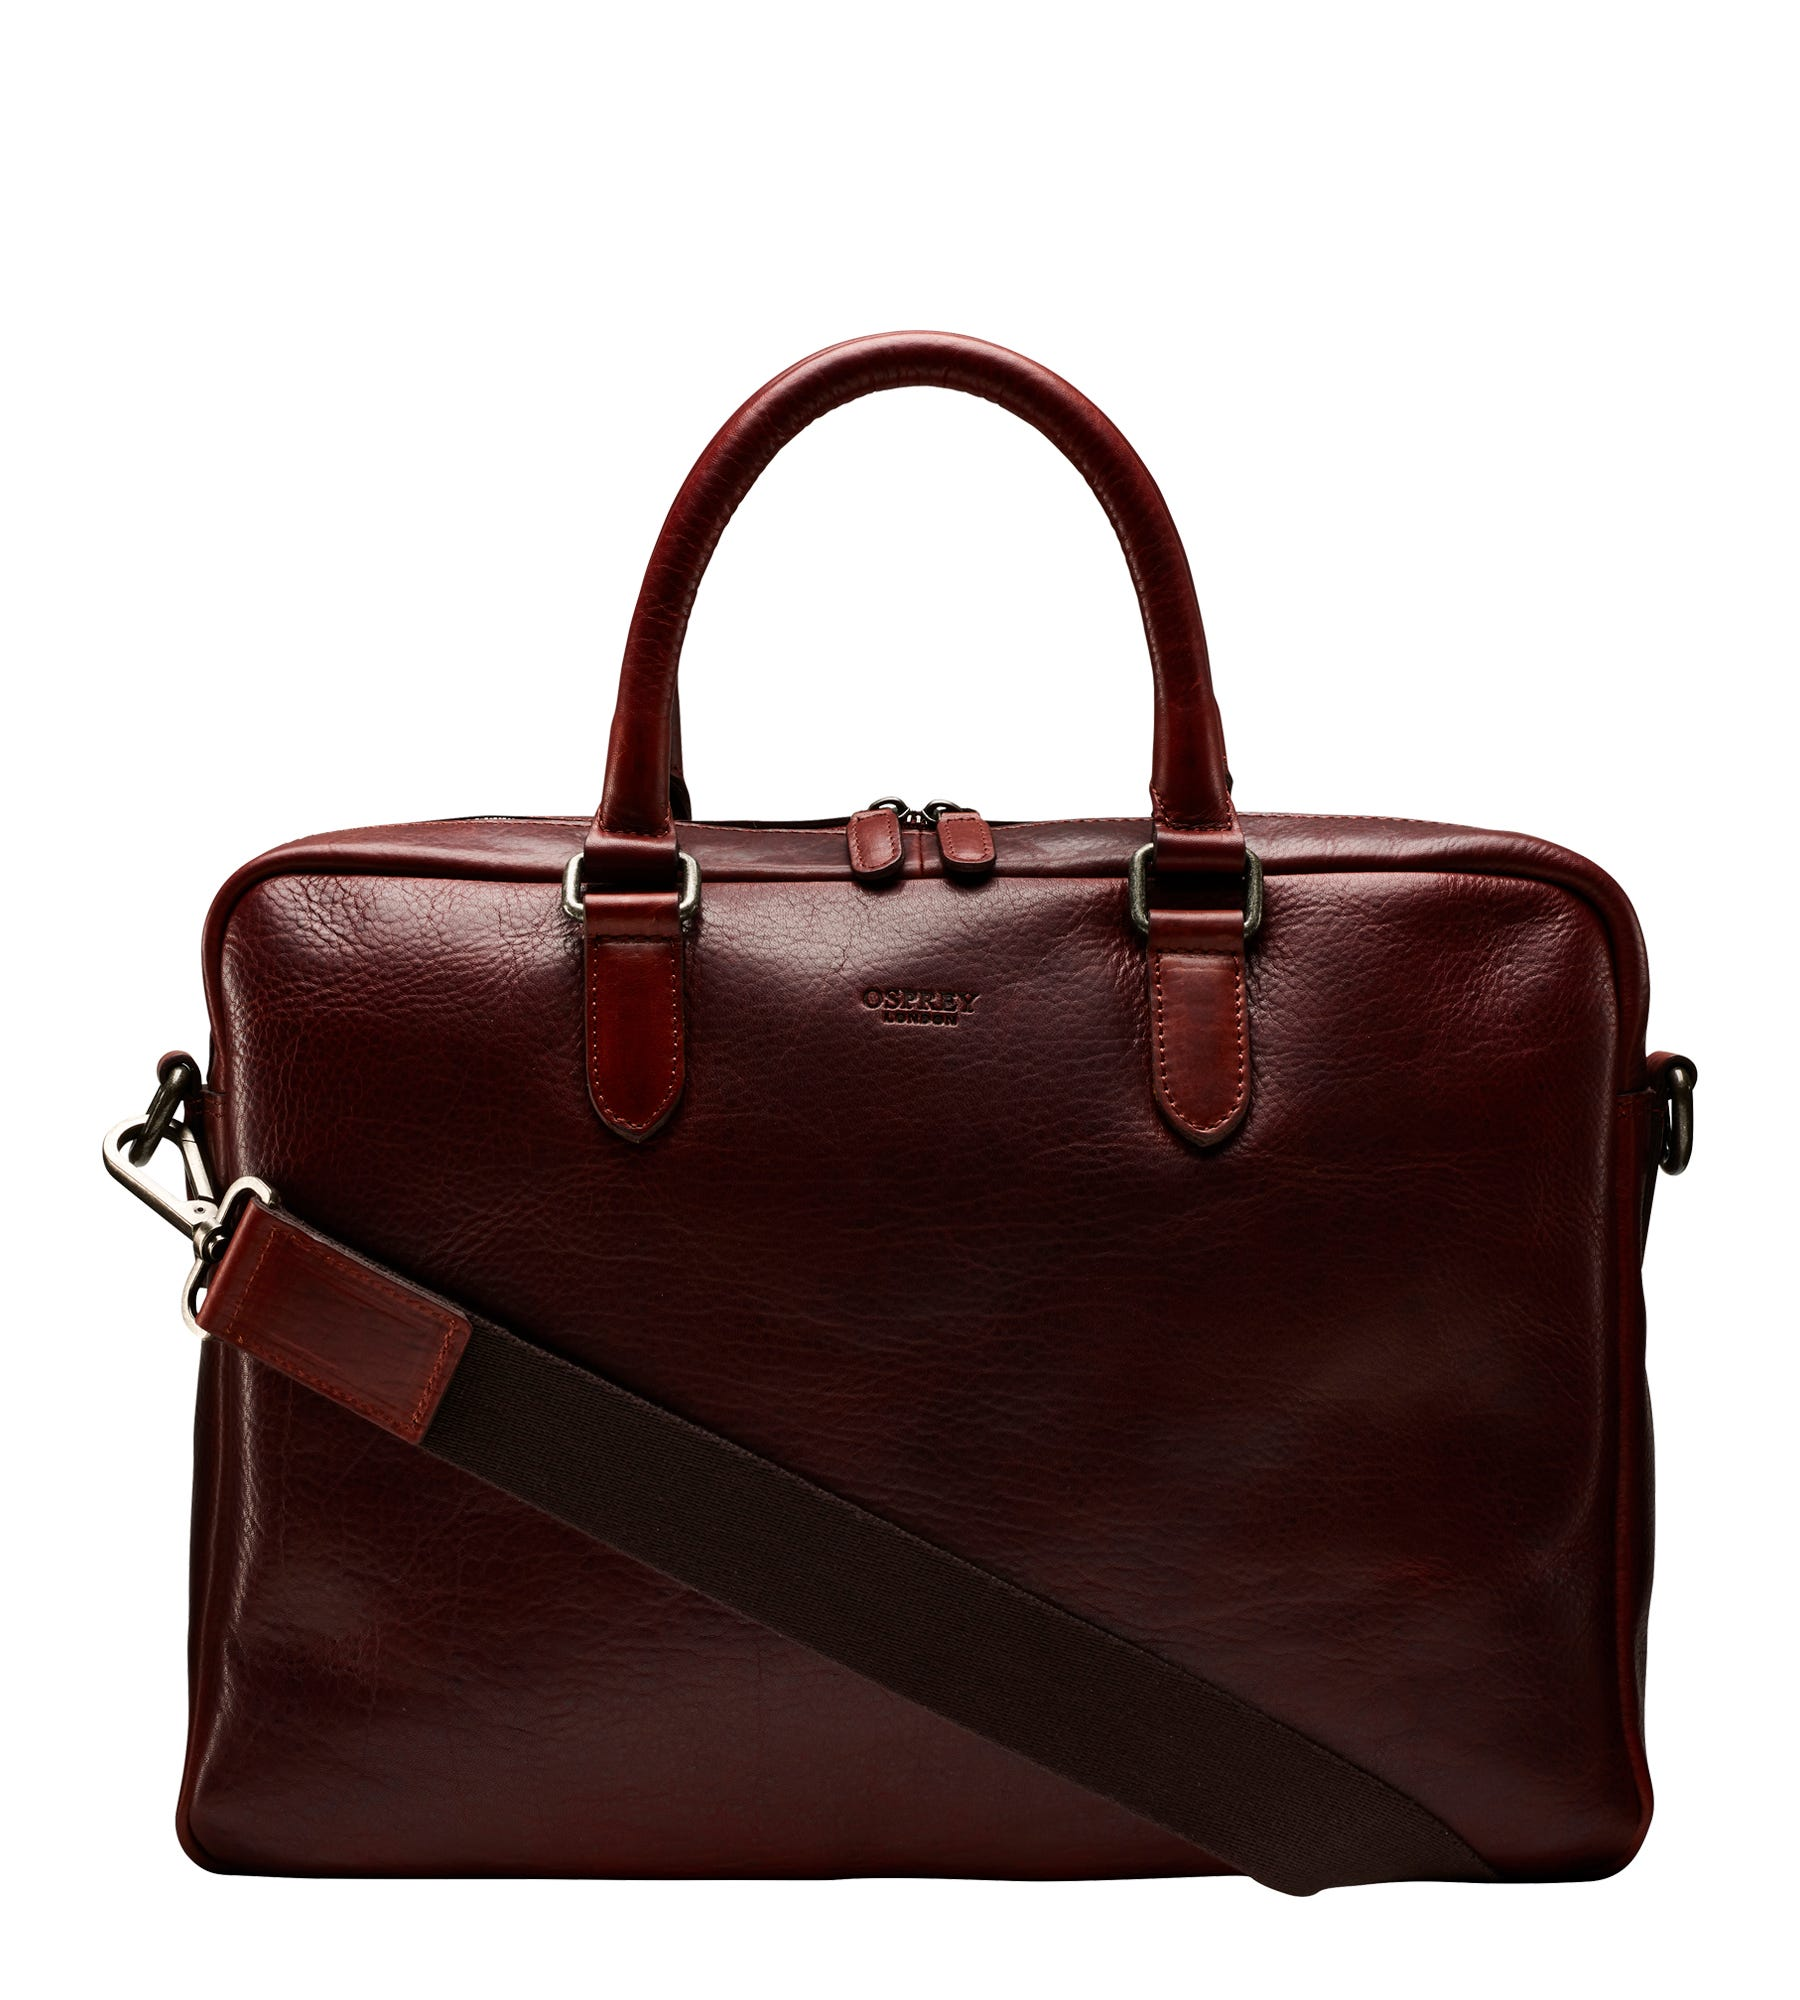 An image of The Hector Leather Laptop Bag